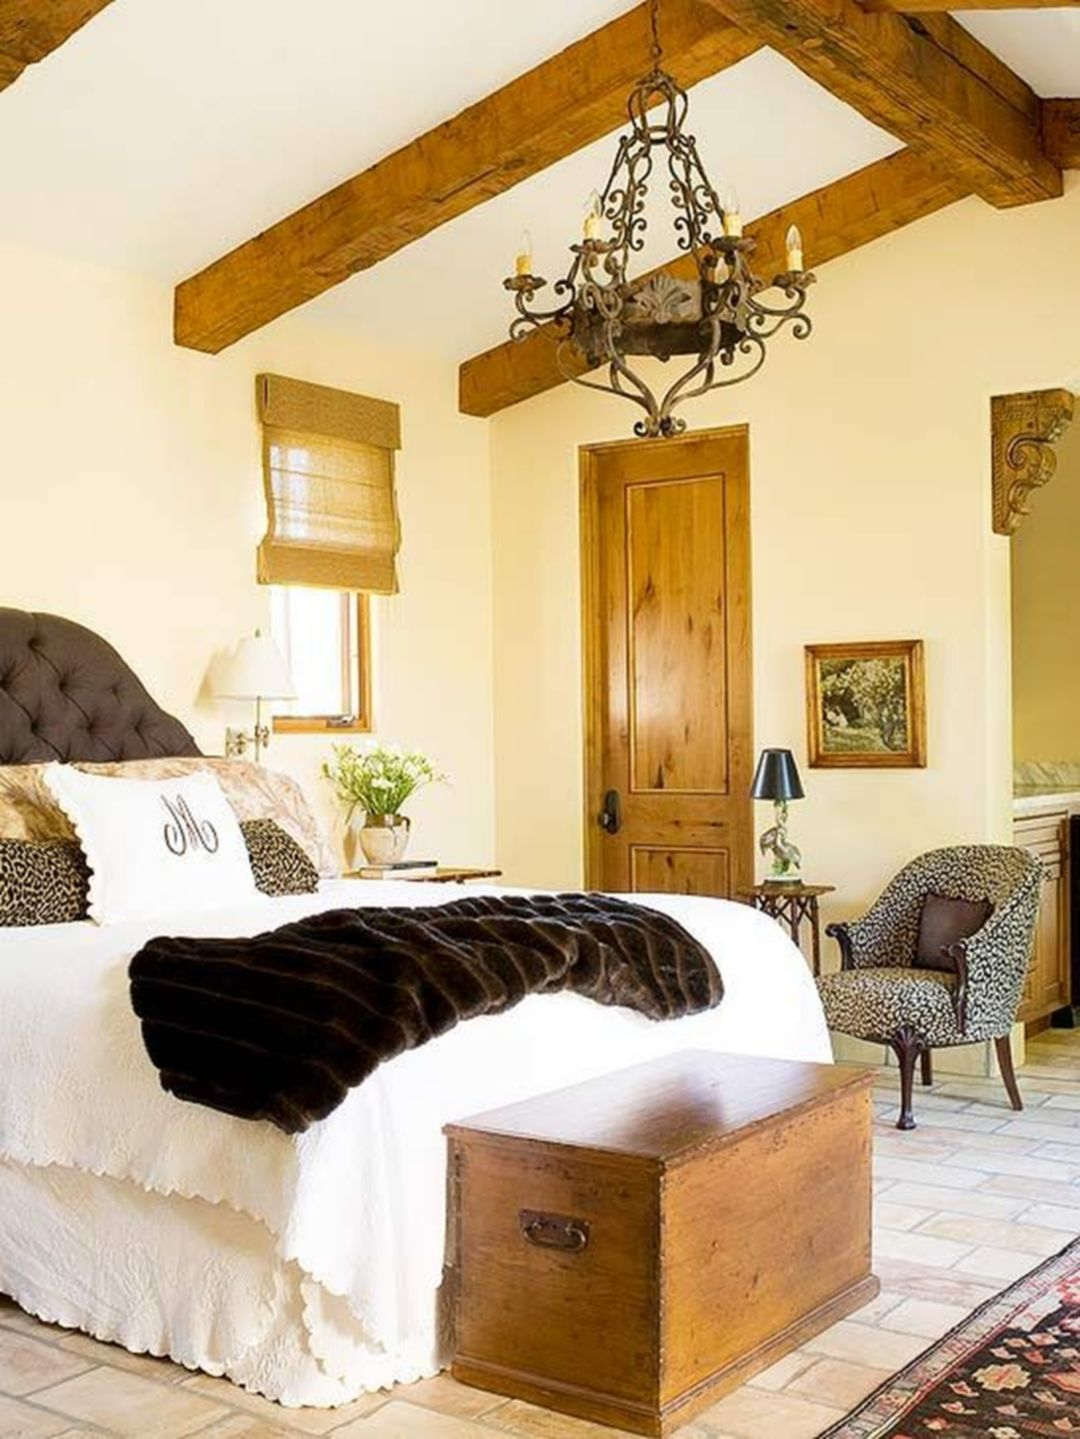 Cool Amazing 20 Rustic Italian Bedroom Decor Ideas You Have To See